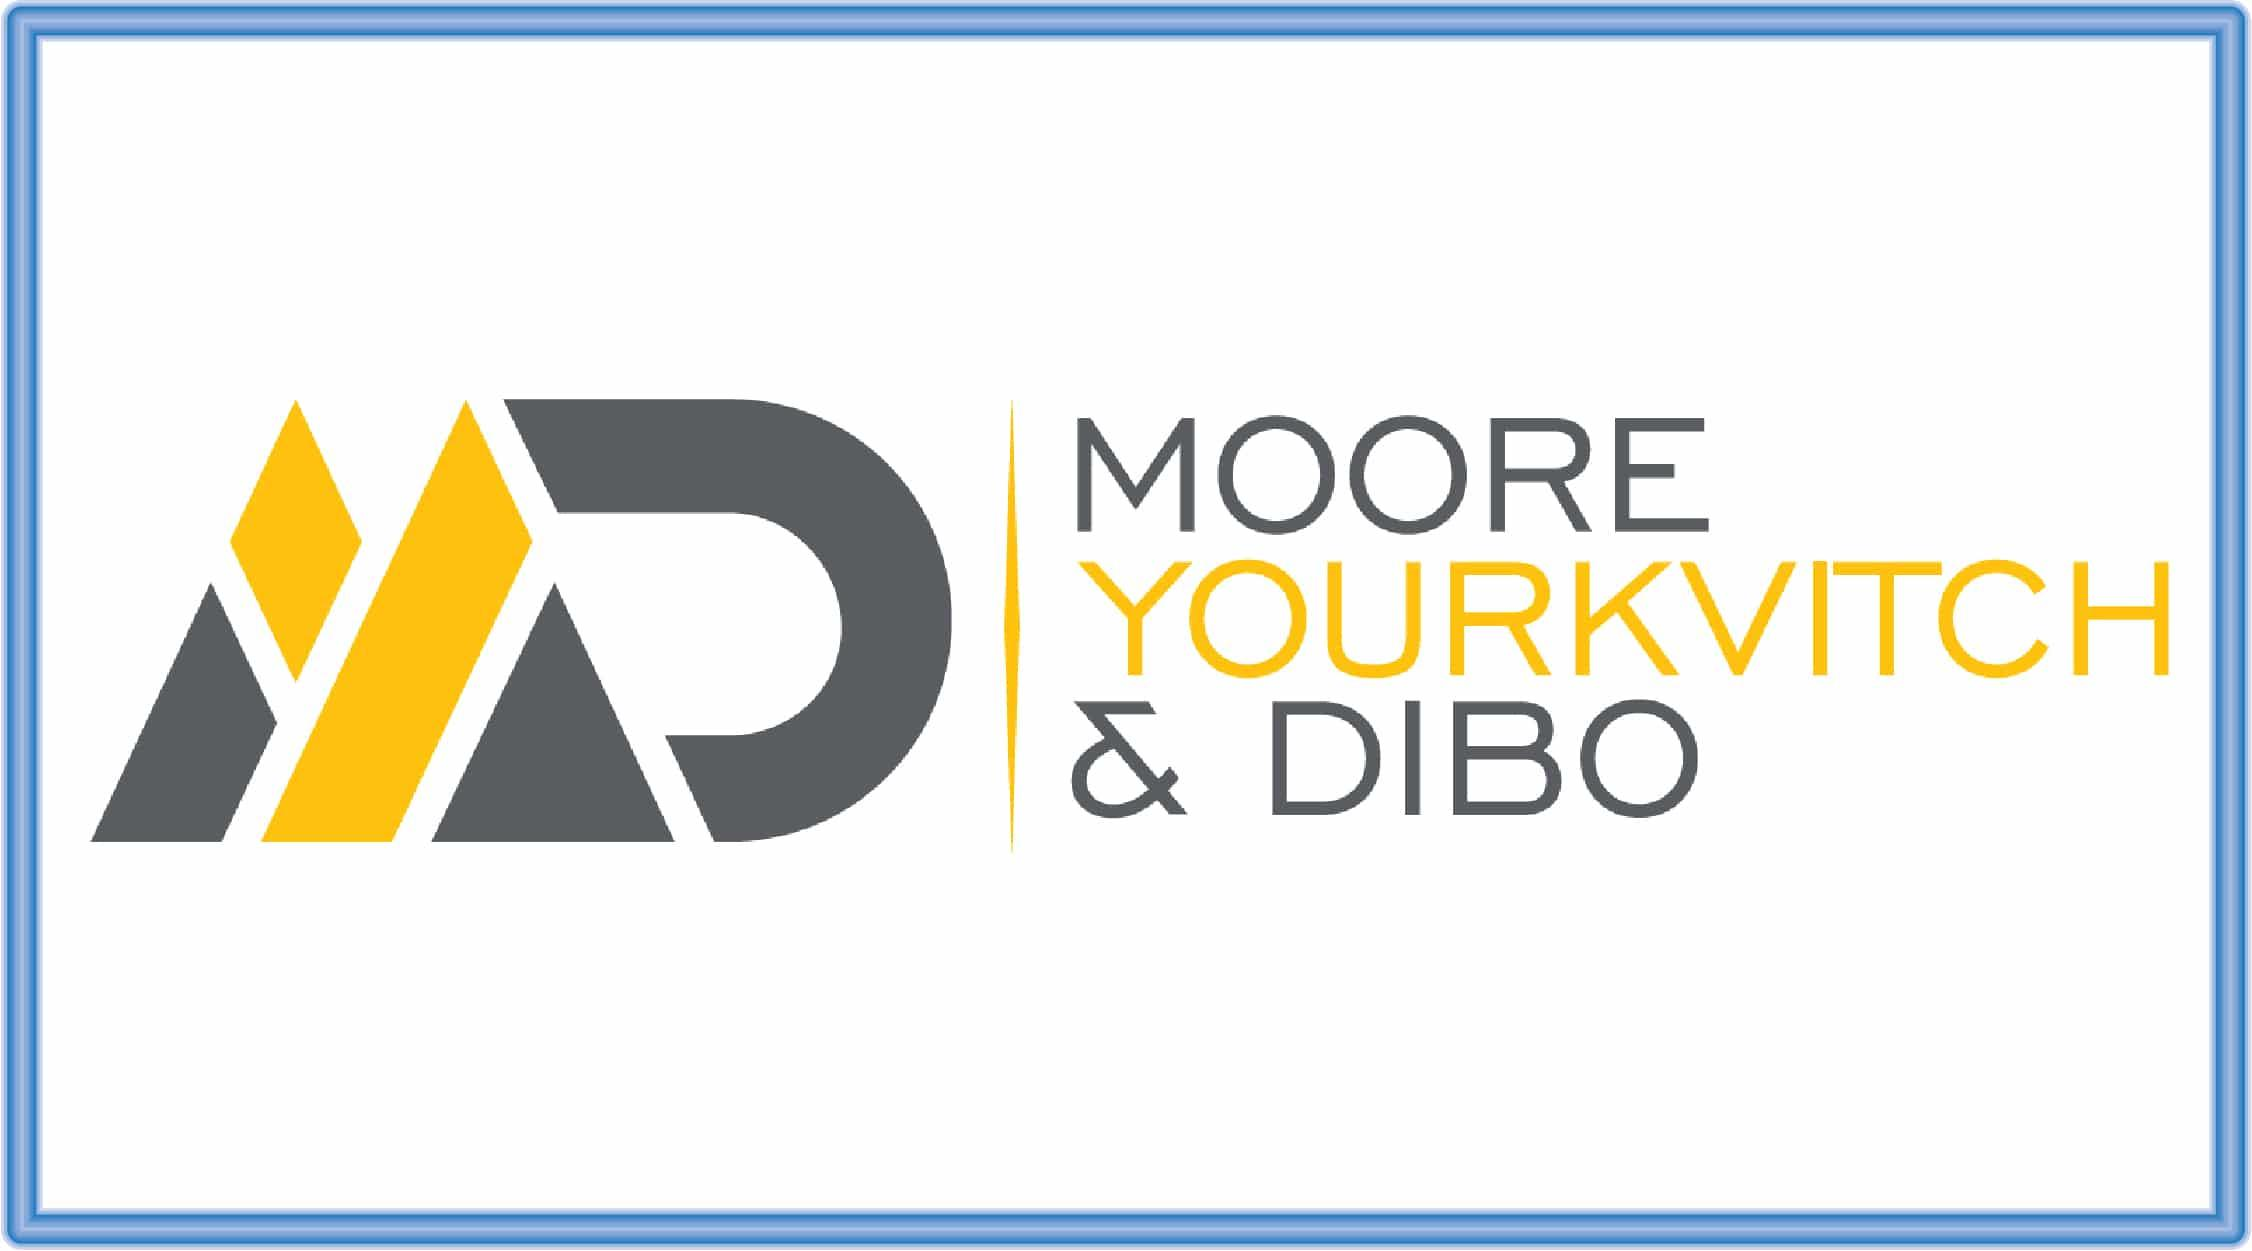 Moore Yourkvitch & Dibo